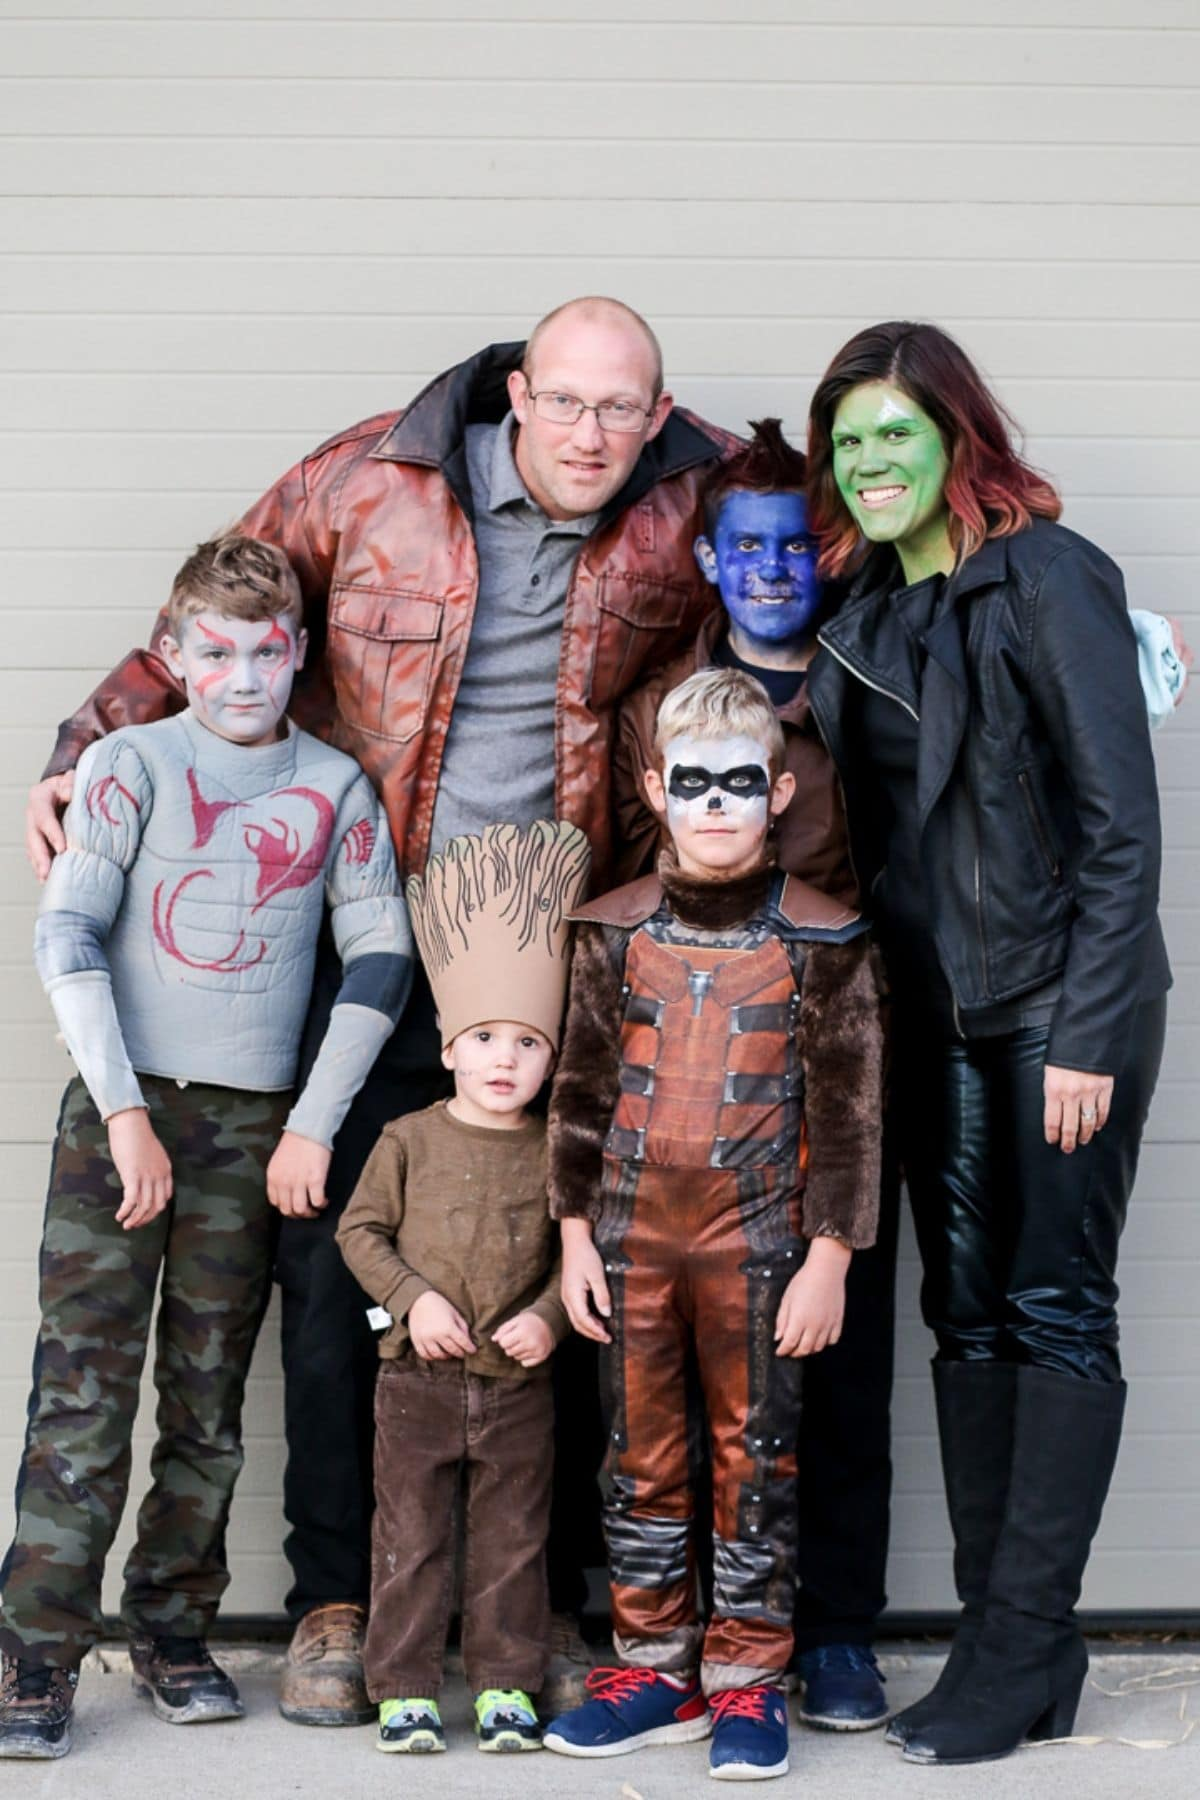 family dressed up as characters from Guardians of the Galaxy